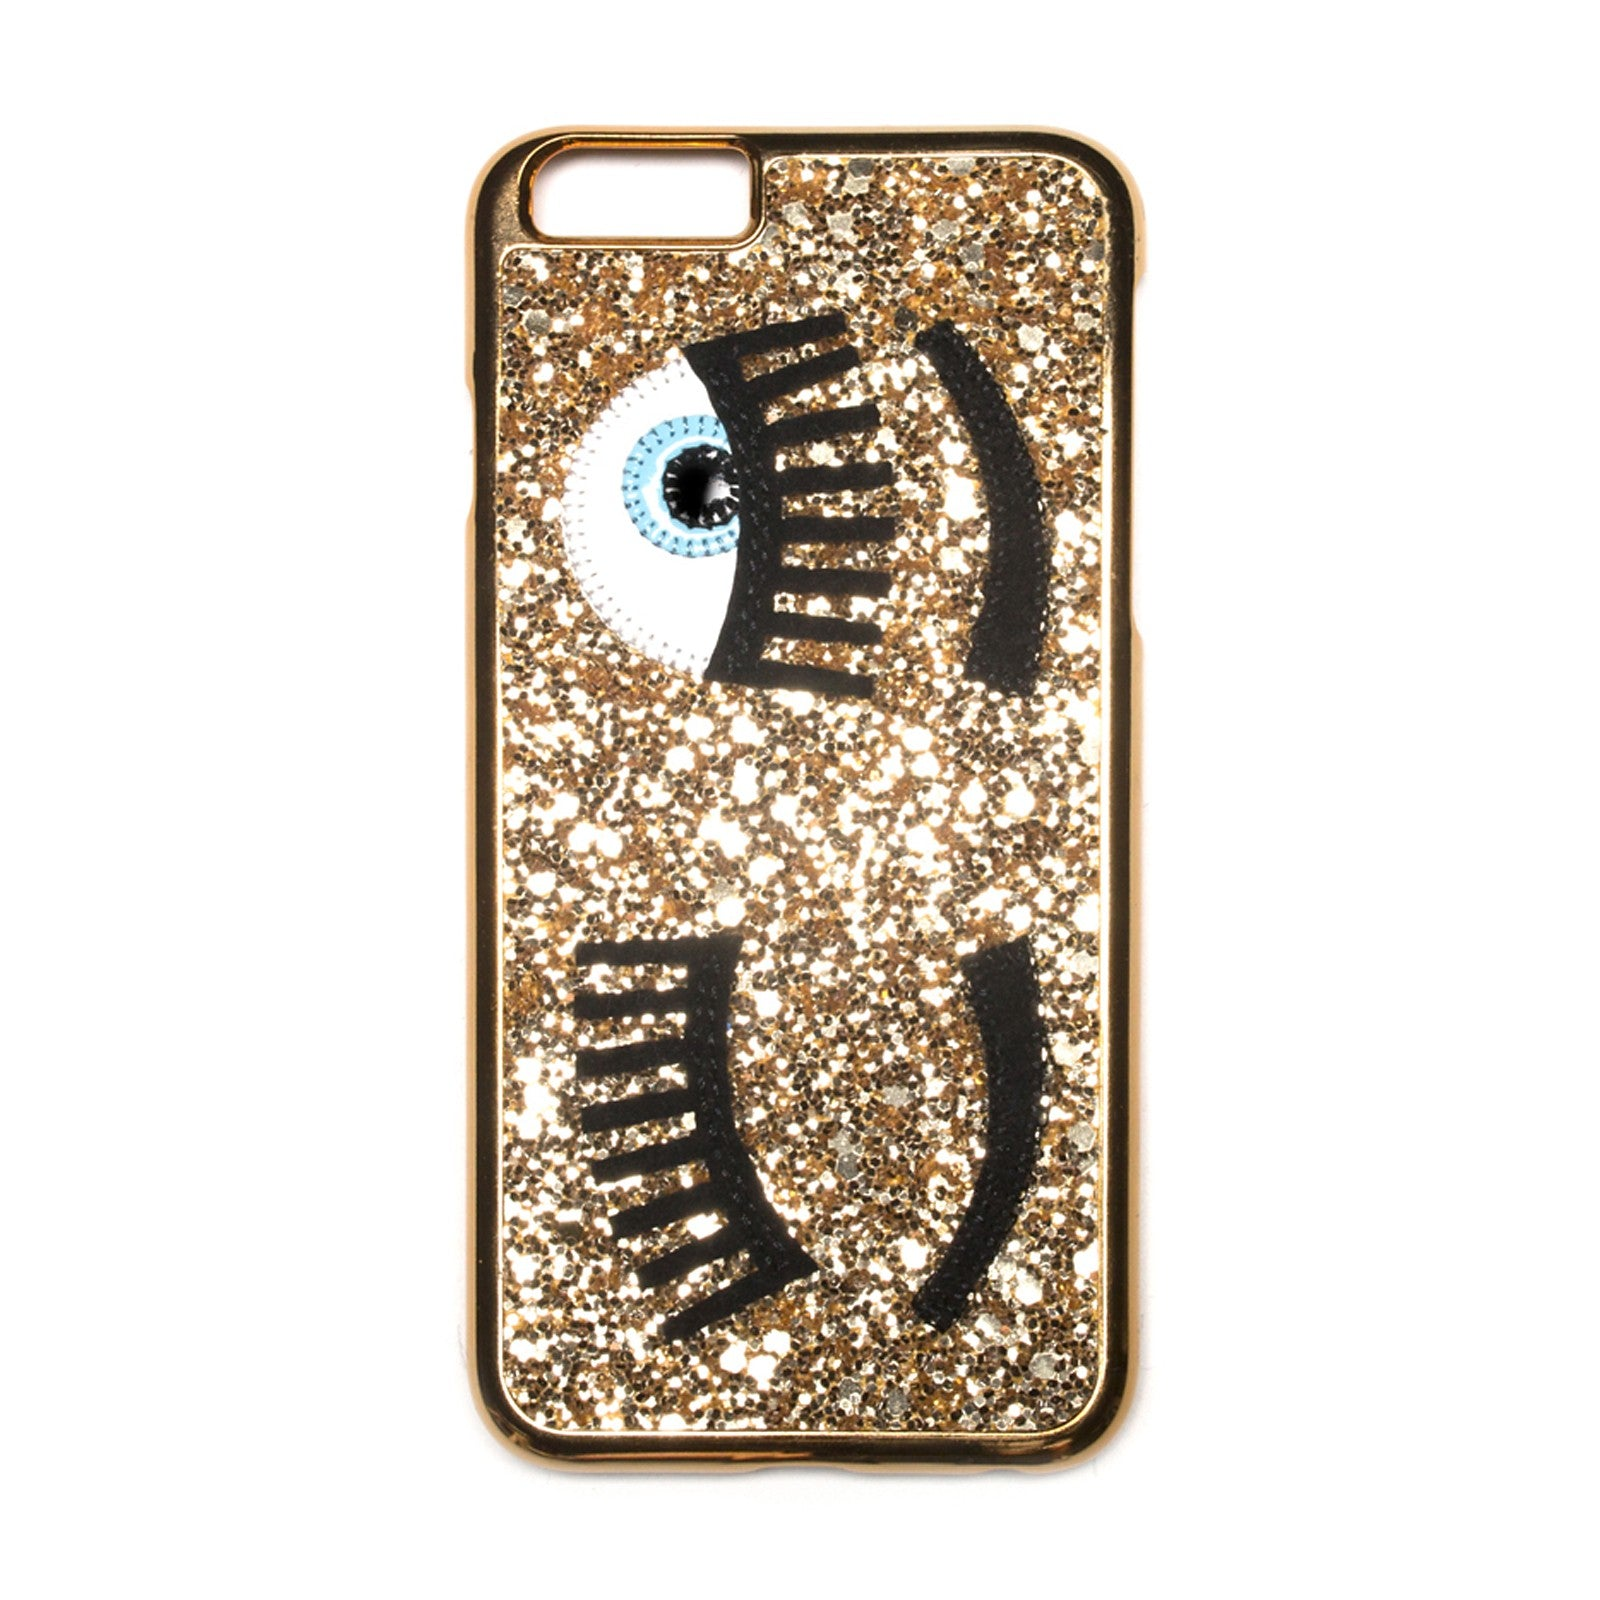 Gold Sequins Eyes Phone Case for iPhone 6/6S/7/7S